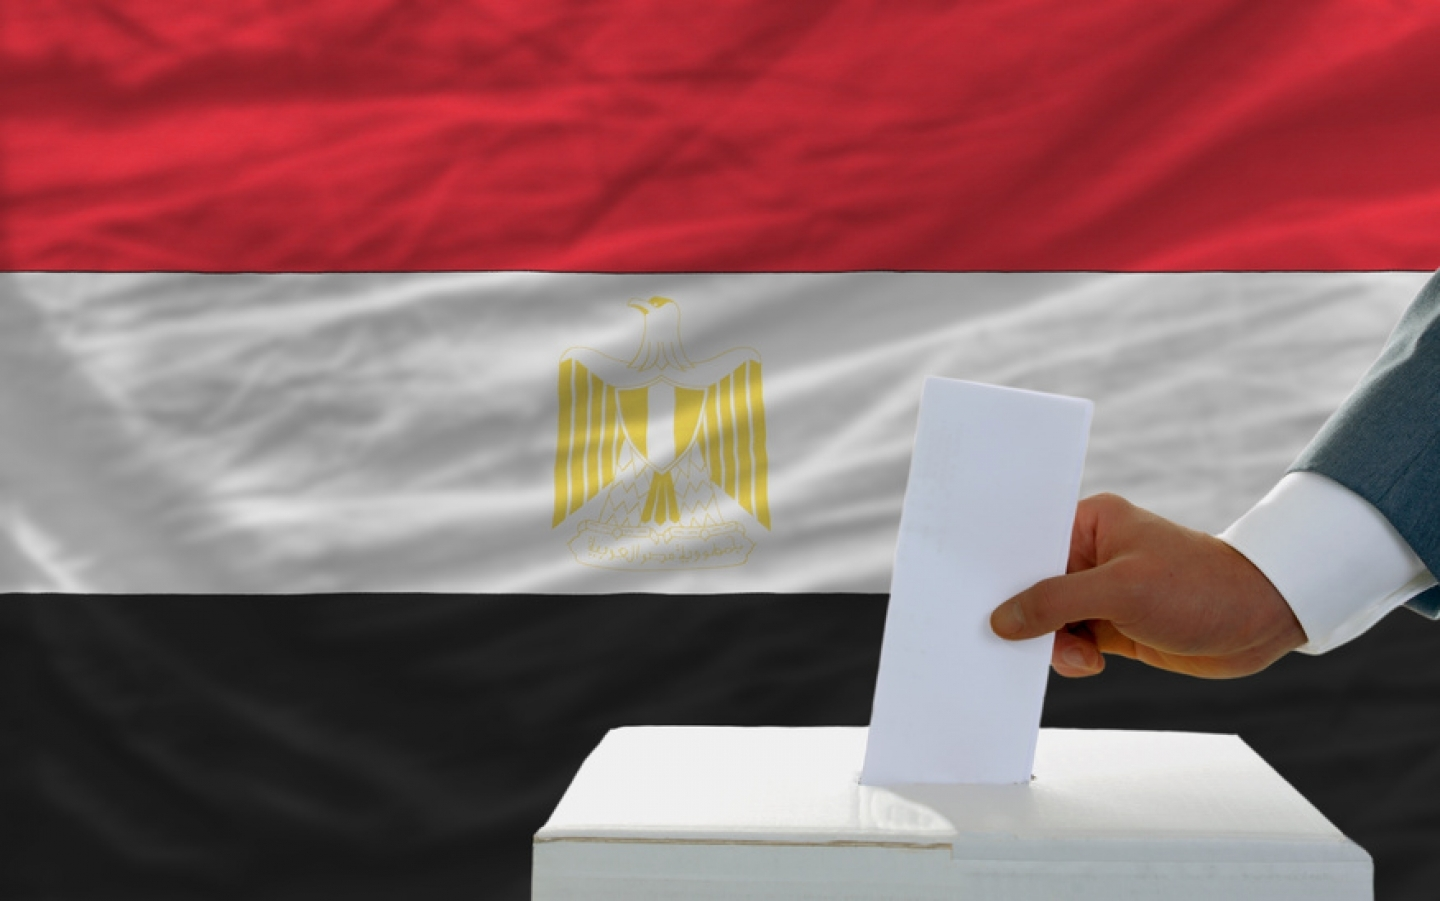 The conflict between Egypt's secularists and Islamists is blurring the country's efforts to define its political institutions (AP Microstock RF).